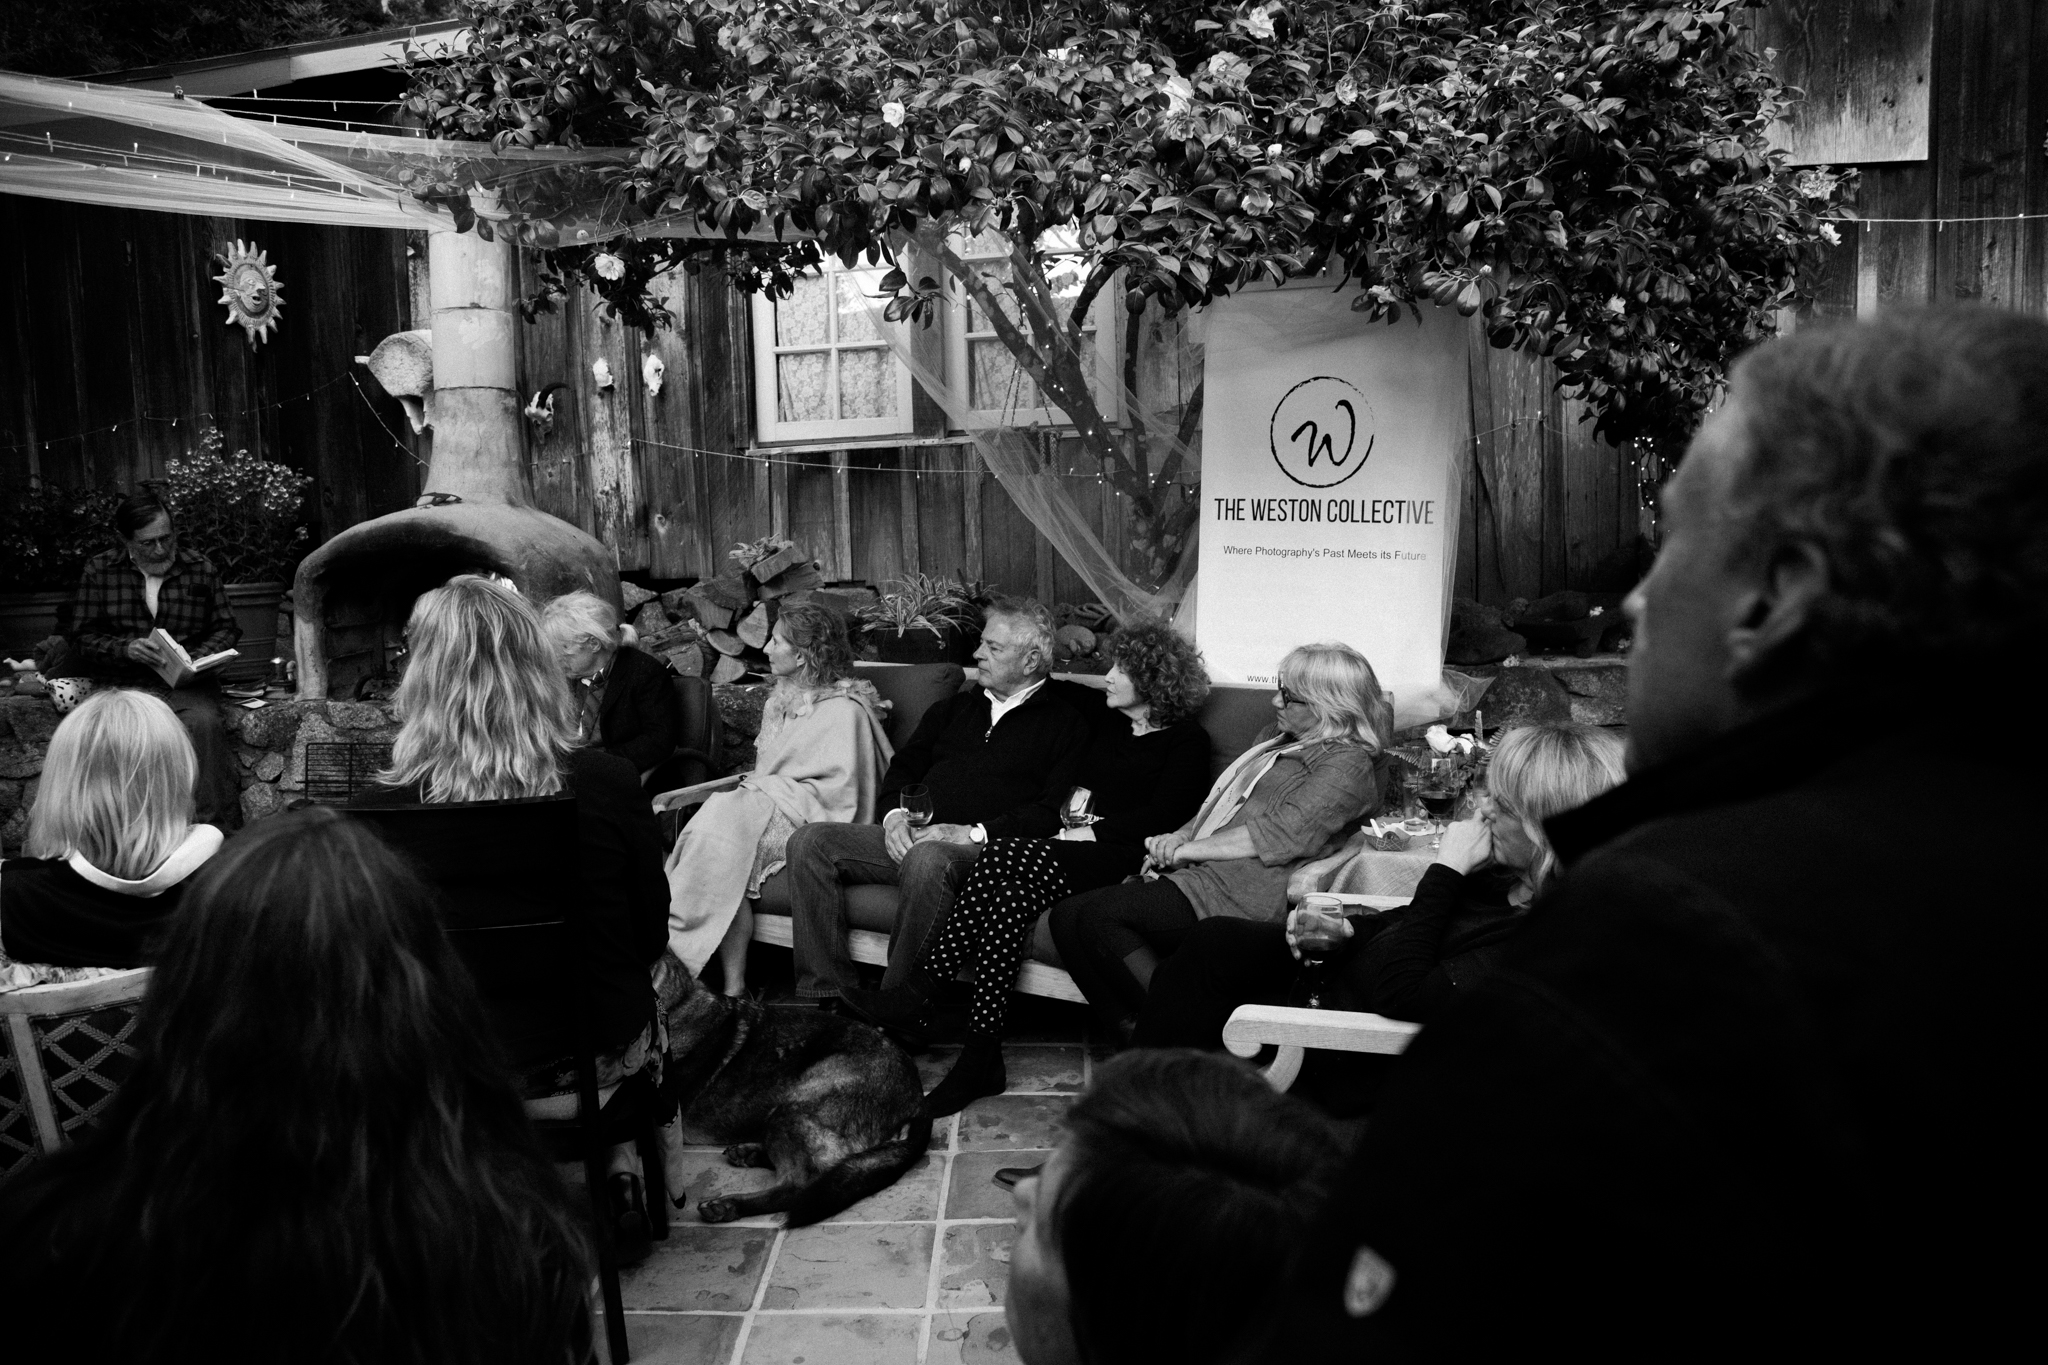 Supporters of The Weston Collective listen as Elliot Roberts recites poems by Robinson Jeffers and reads from Edward Weston's  Daybooks.